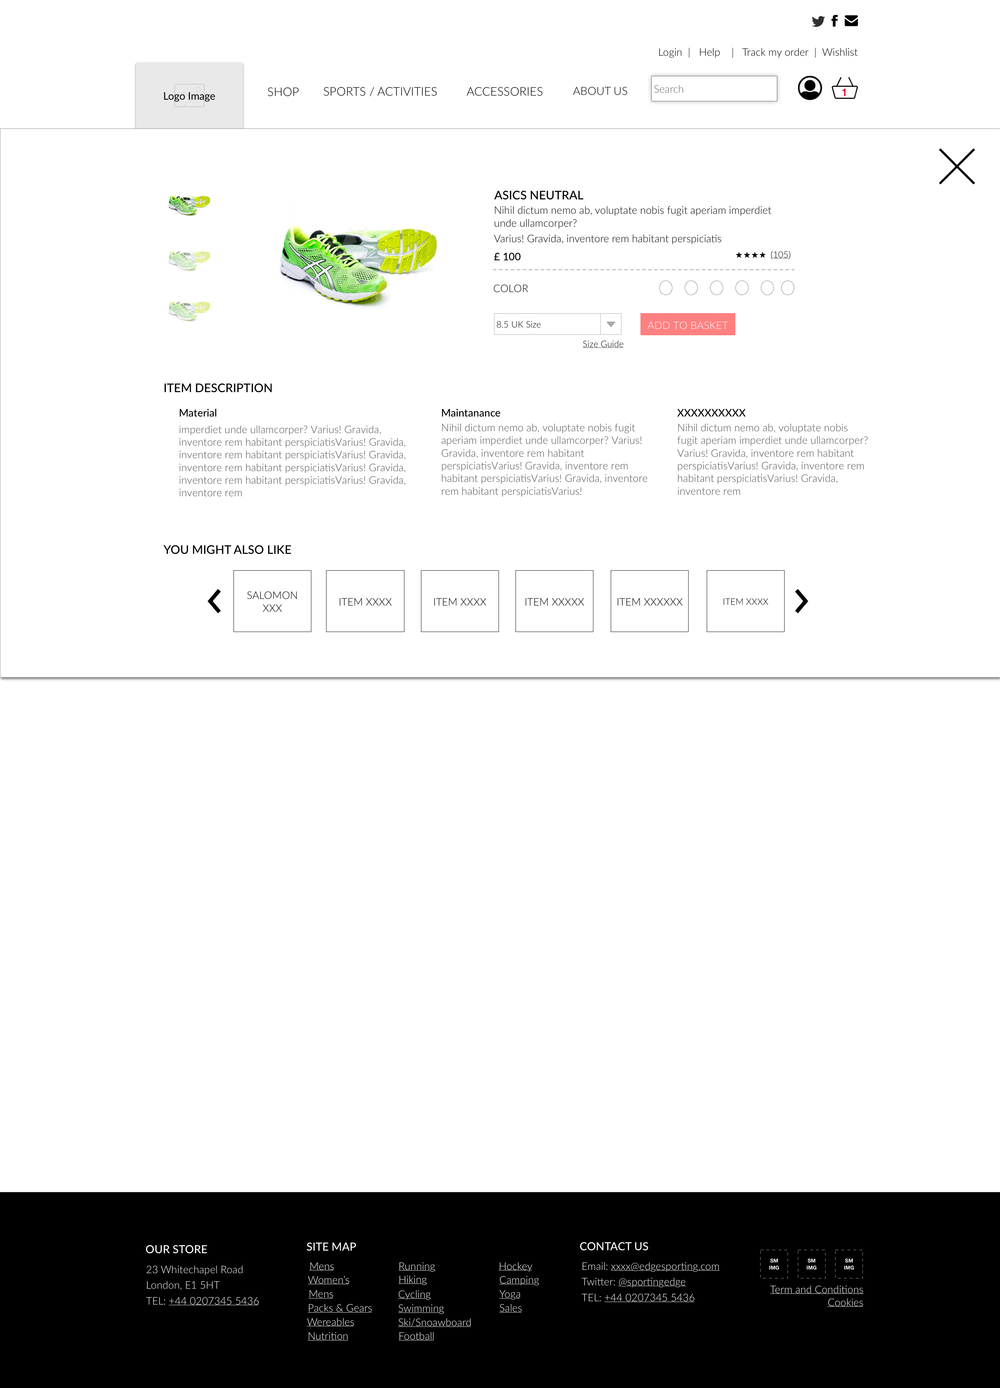 PRODUCT+PAGE+WITH+ITEM+ADDED.png